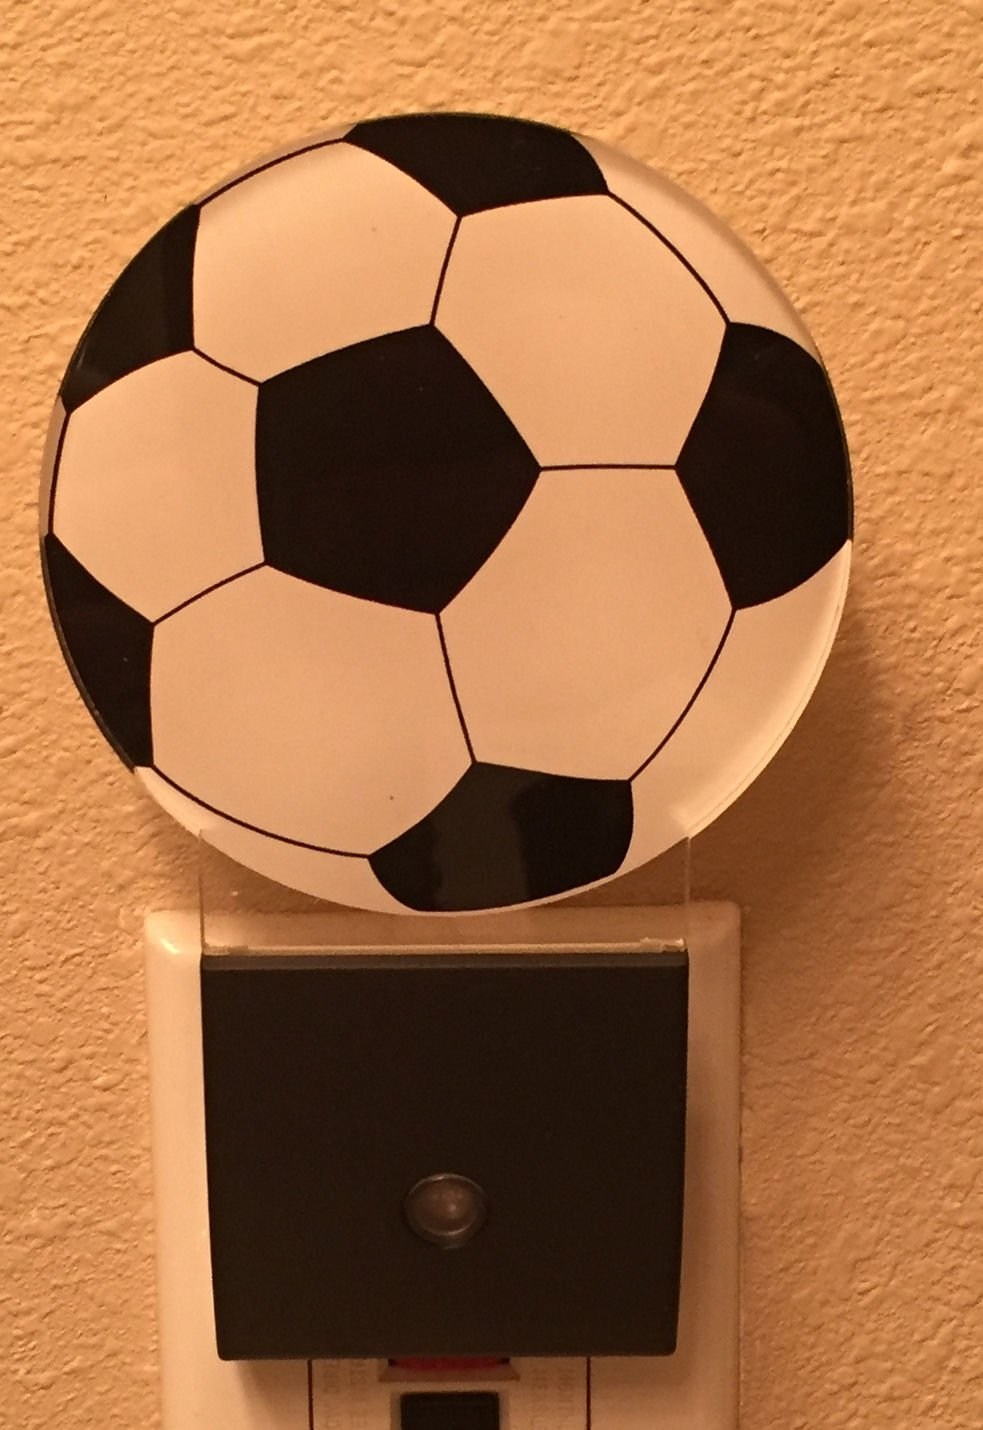 LED Soccer Night Light- Plug In for Safety, Soothing, Calming Nights Good for Kids & Adults Automatic